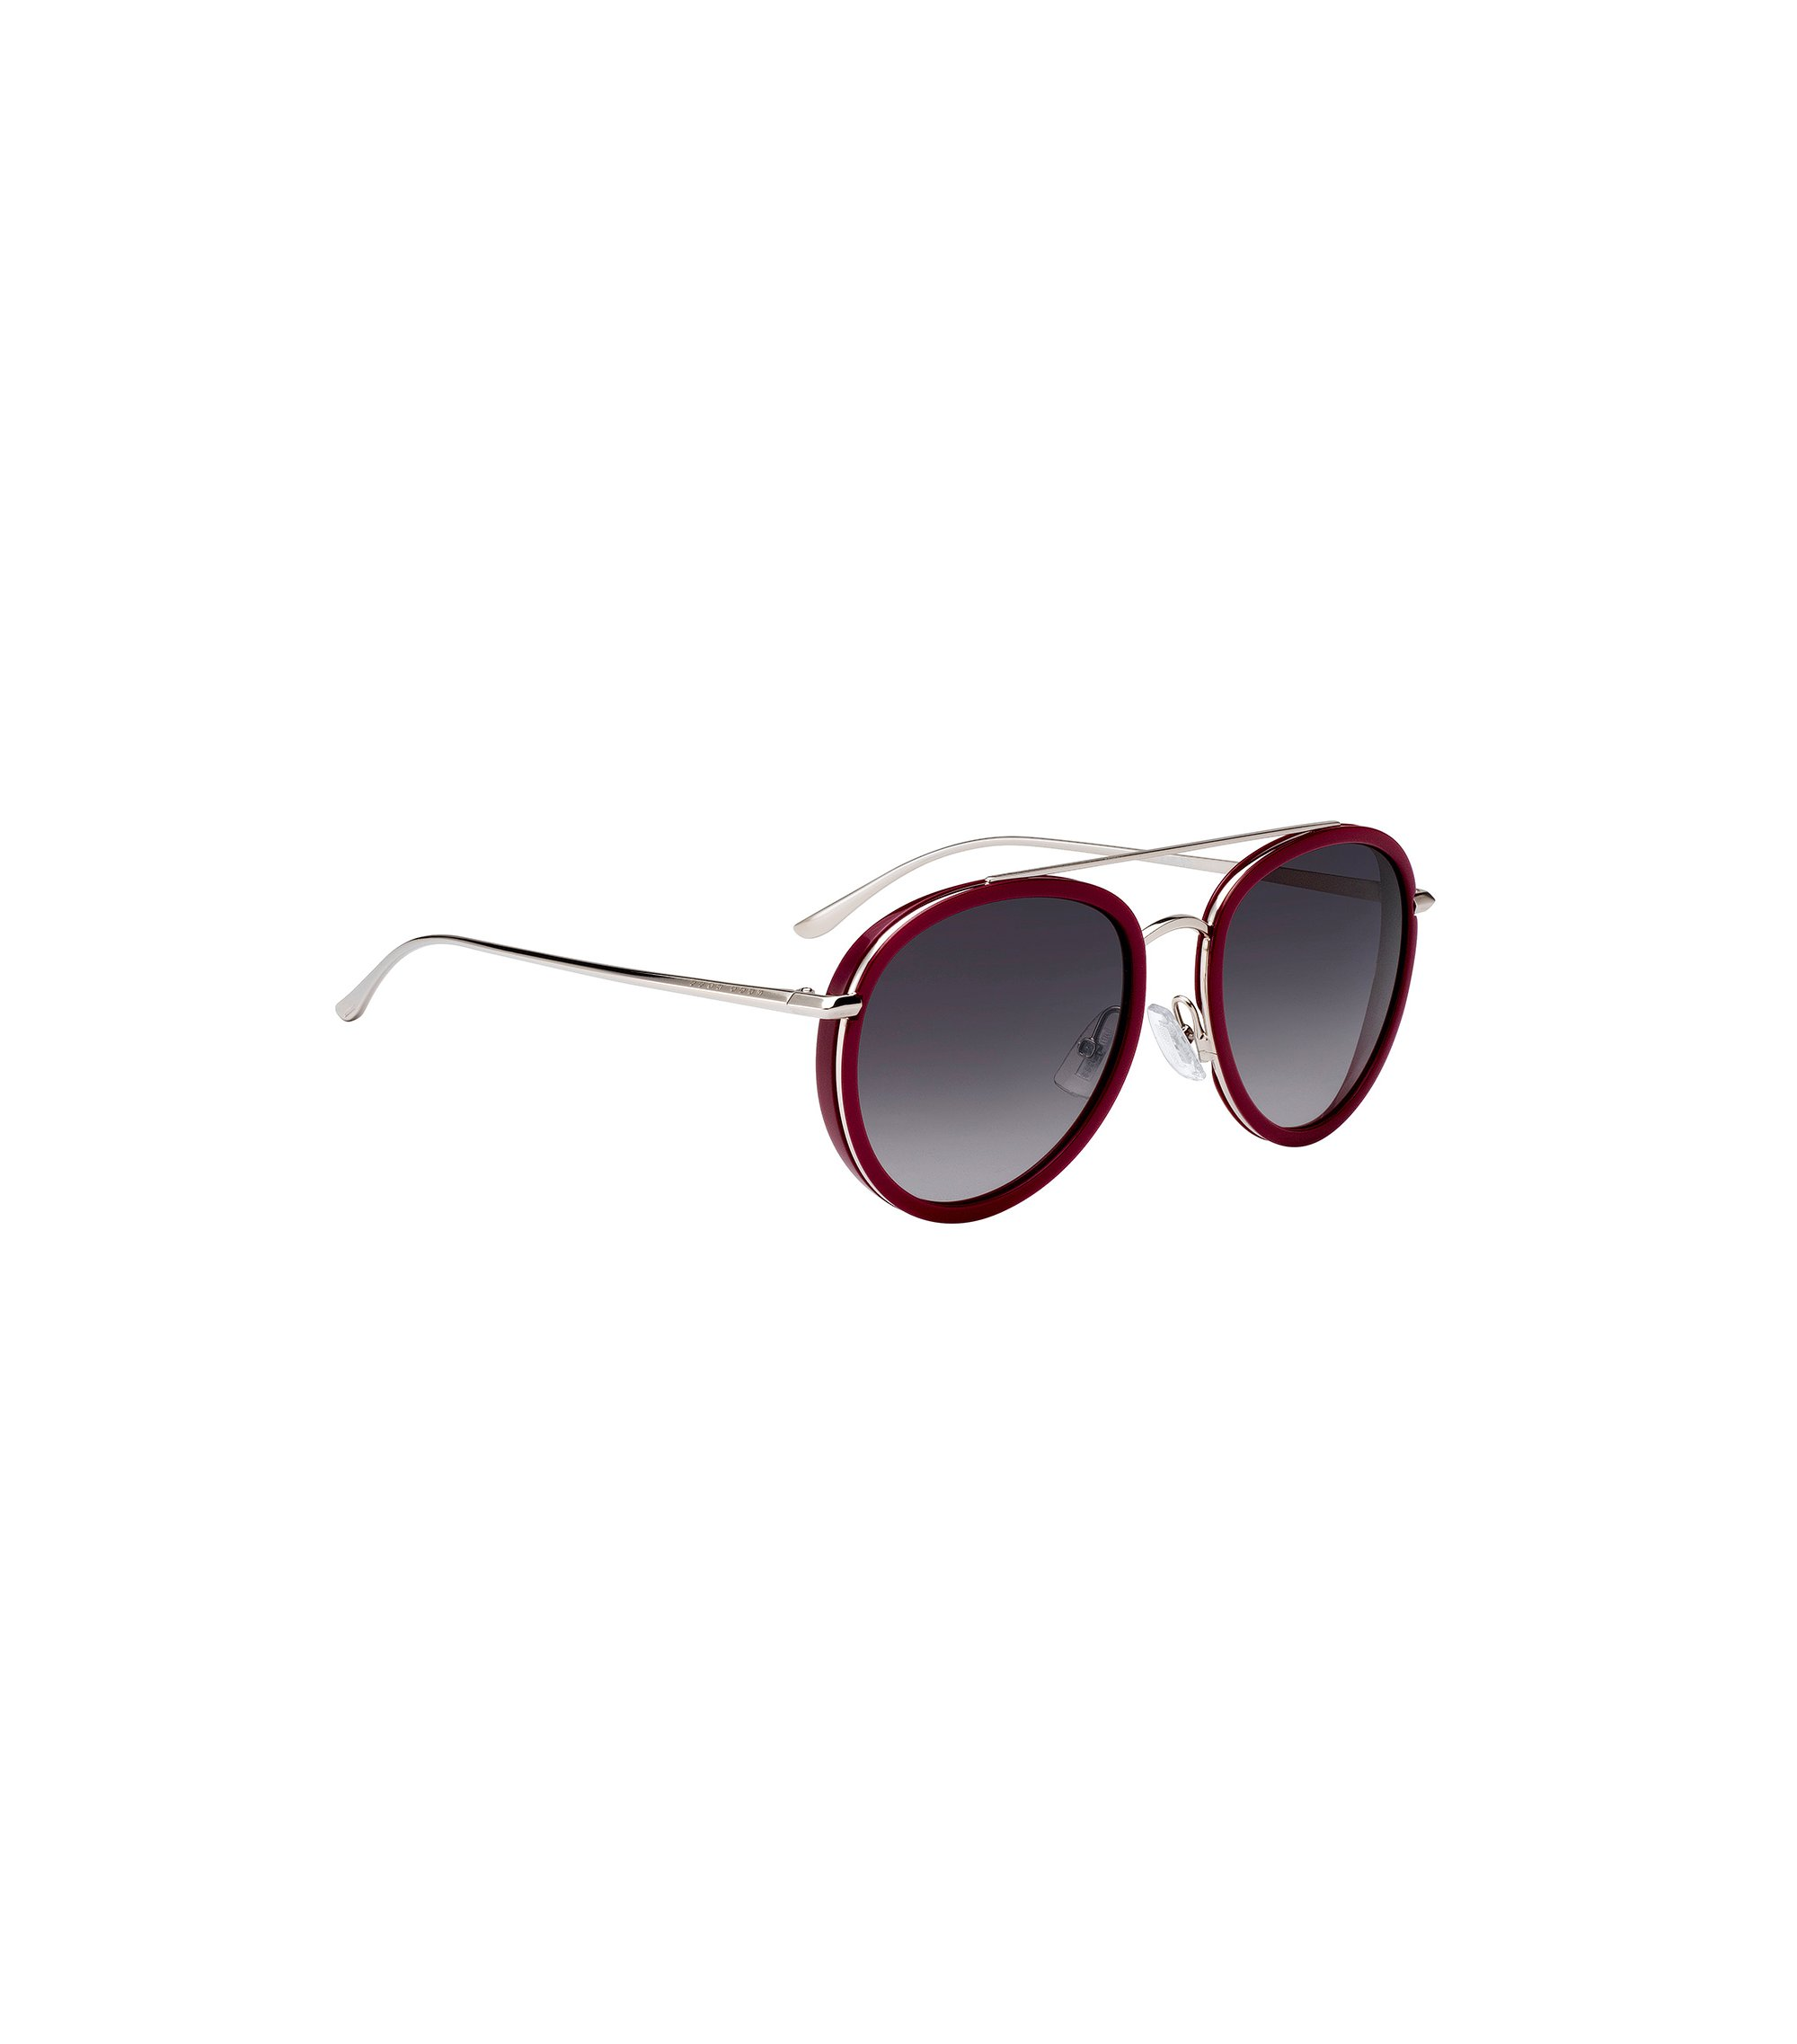 Double-bridge sunglasses in berry acetate, Dark Red